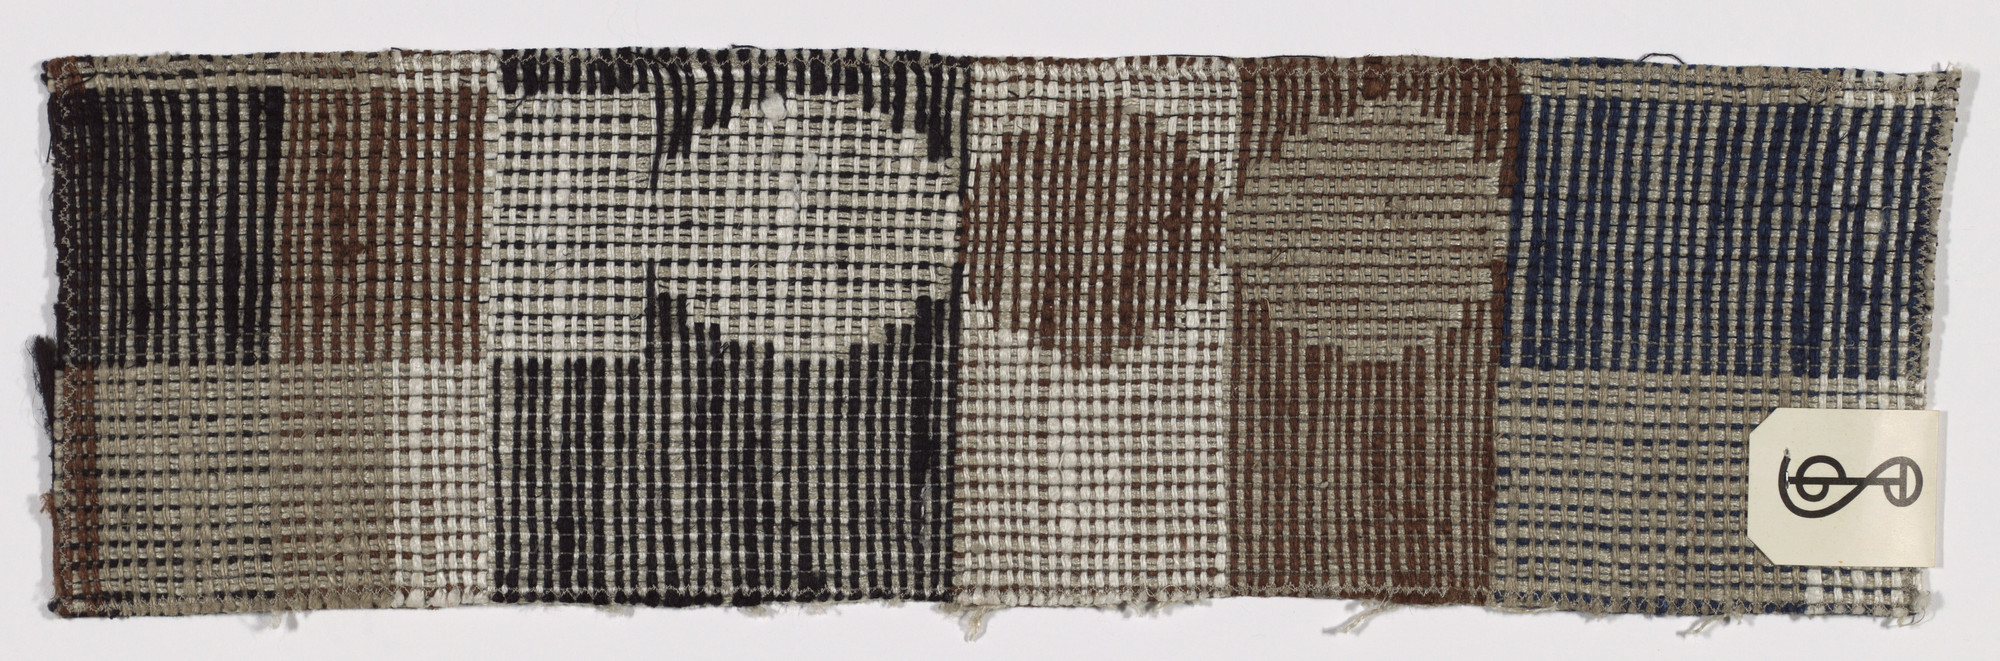 Gunta Stölzl. Fabric Sample. c. 1932-66